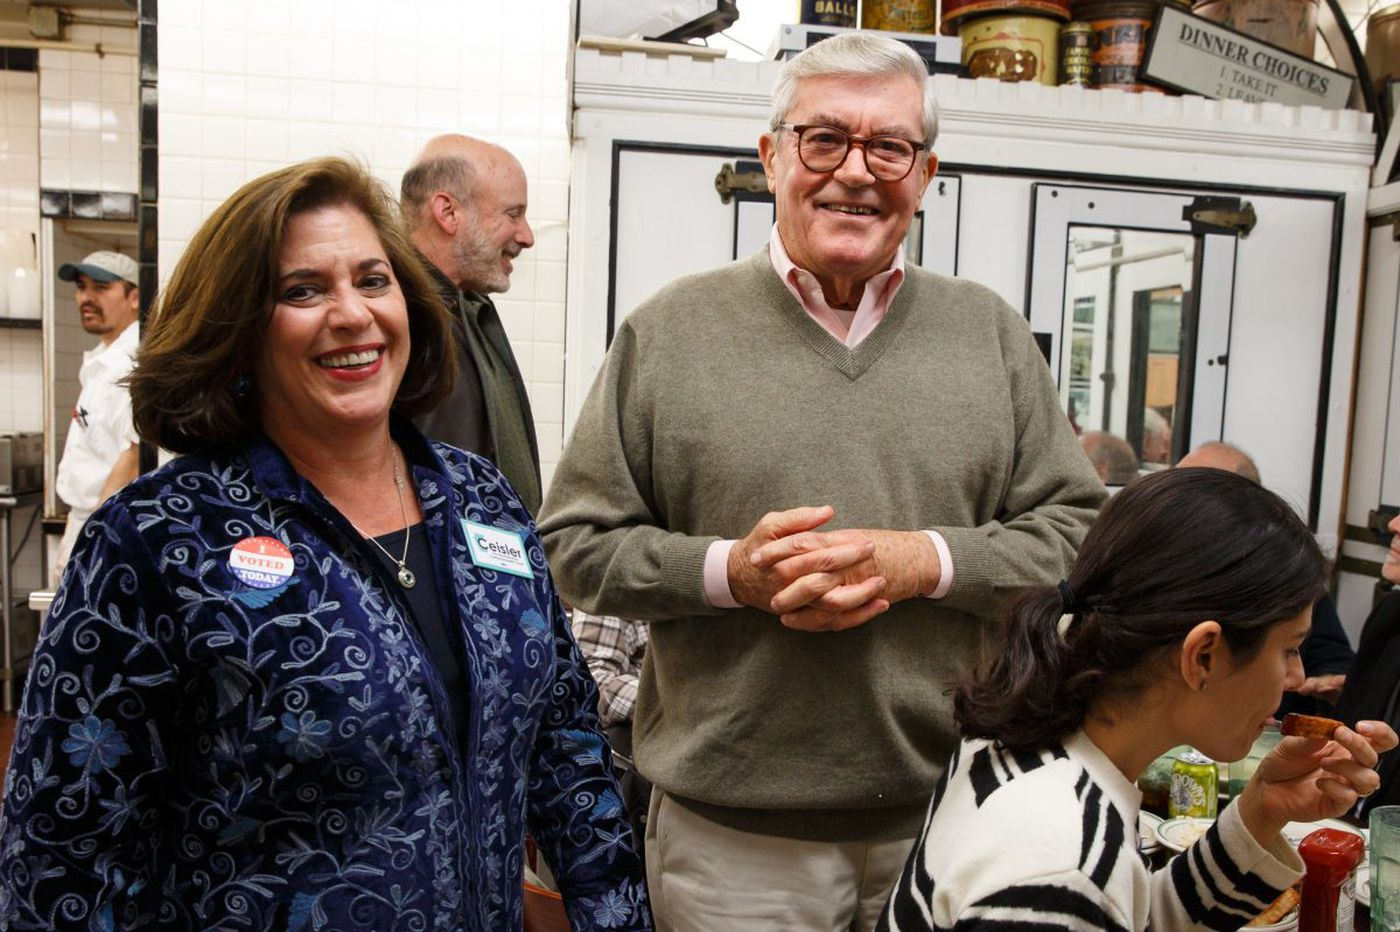 Modern family gets behind judicial candidate